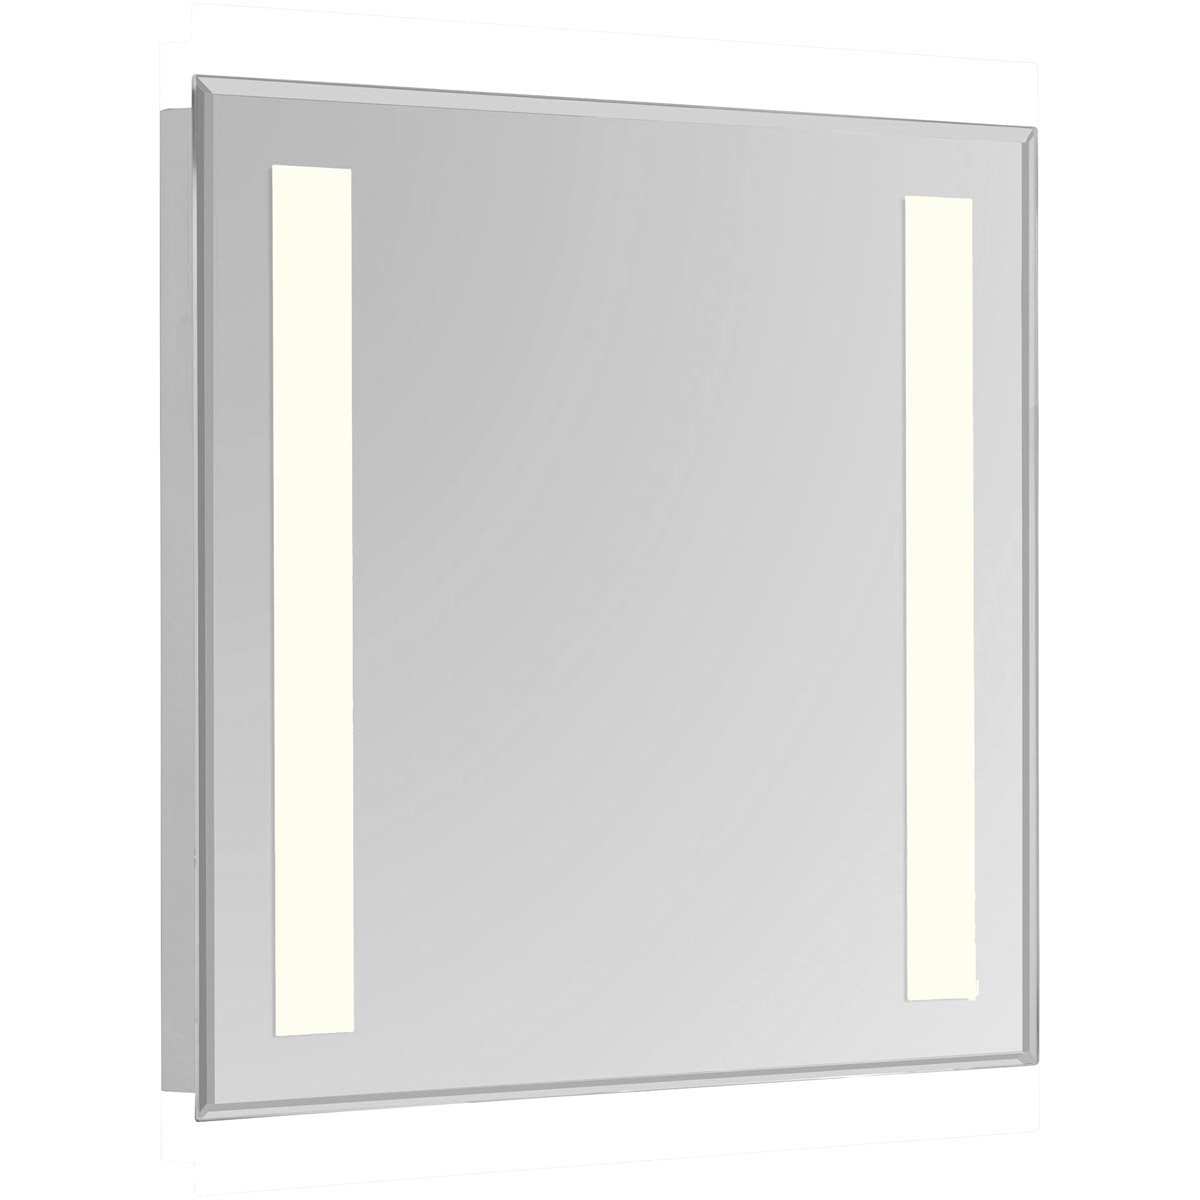 Nova 30 X 24 Hardwired Glossy White Led Wall Mirror (Mre-6313) Led Mirror